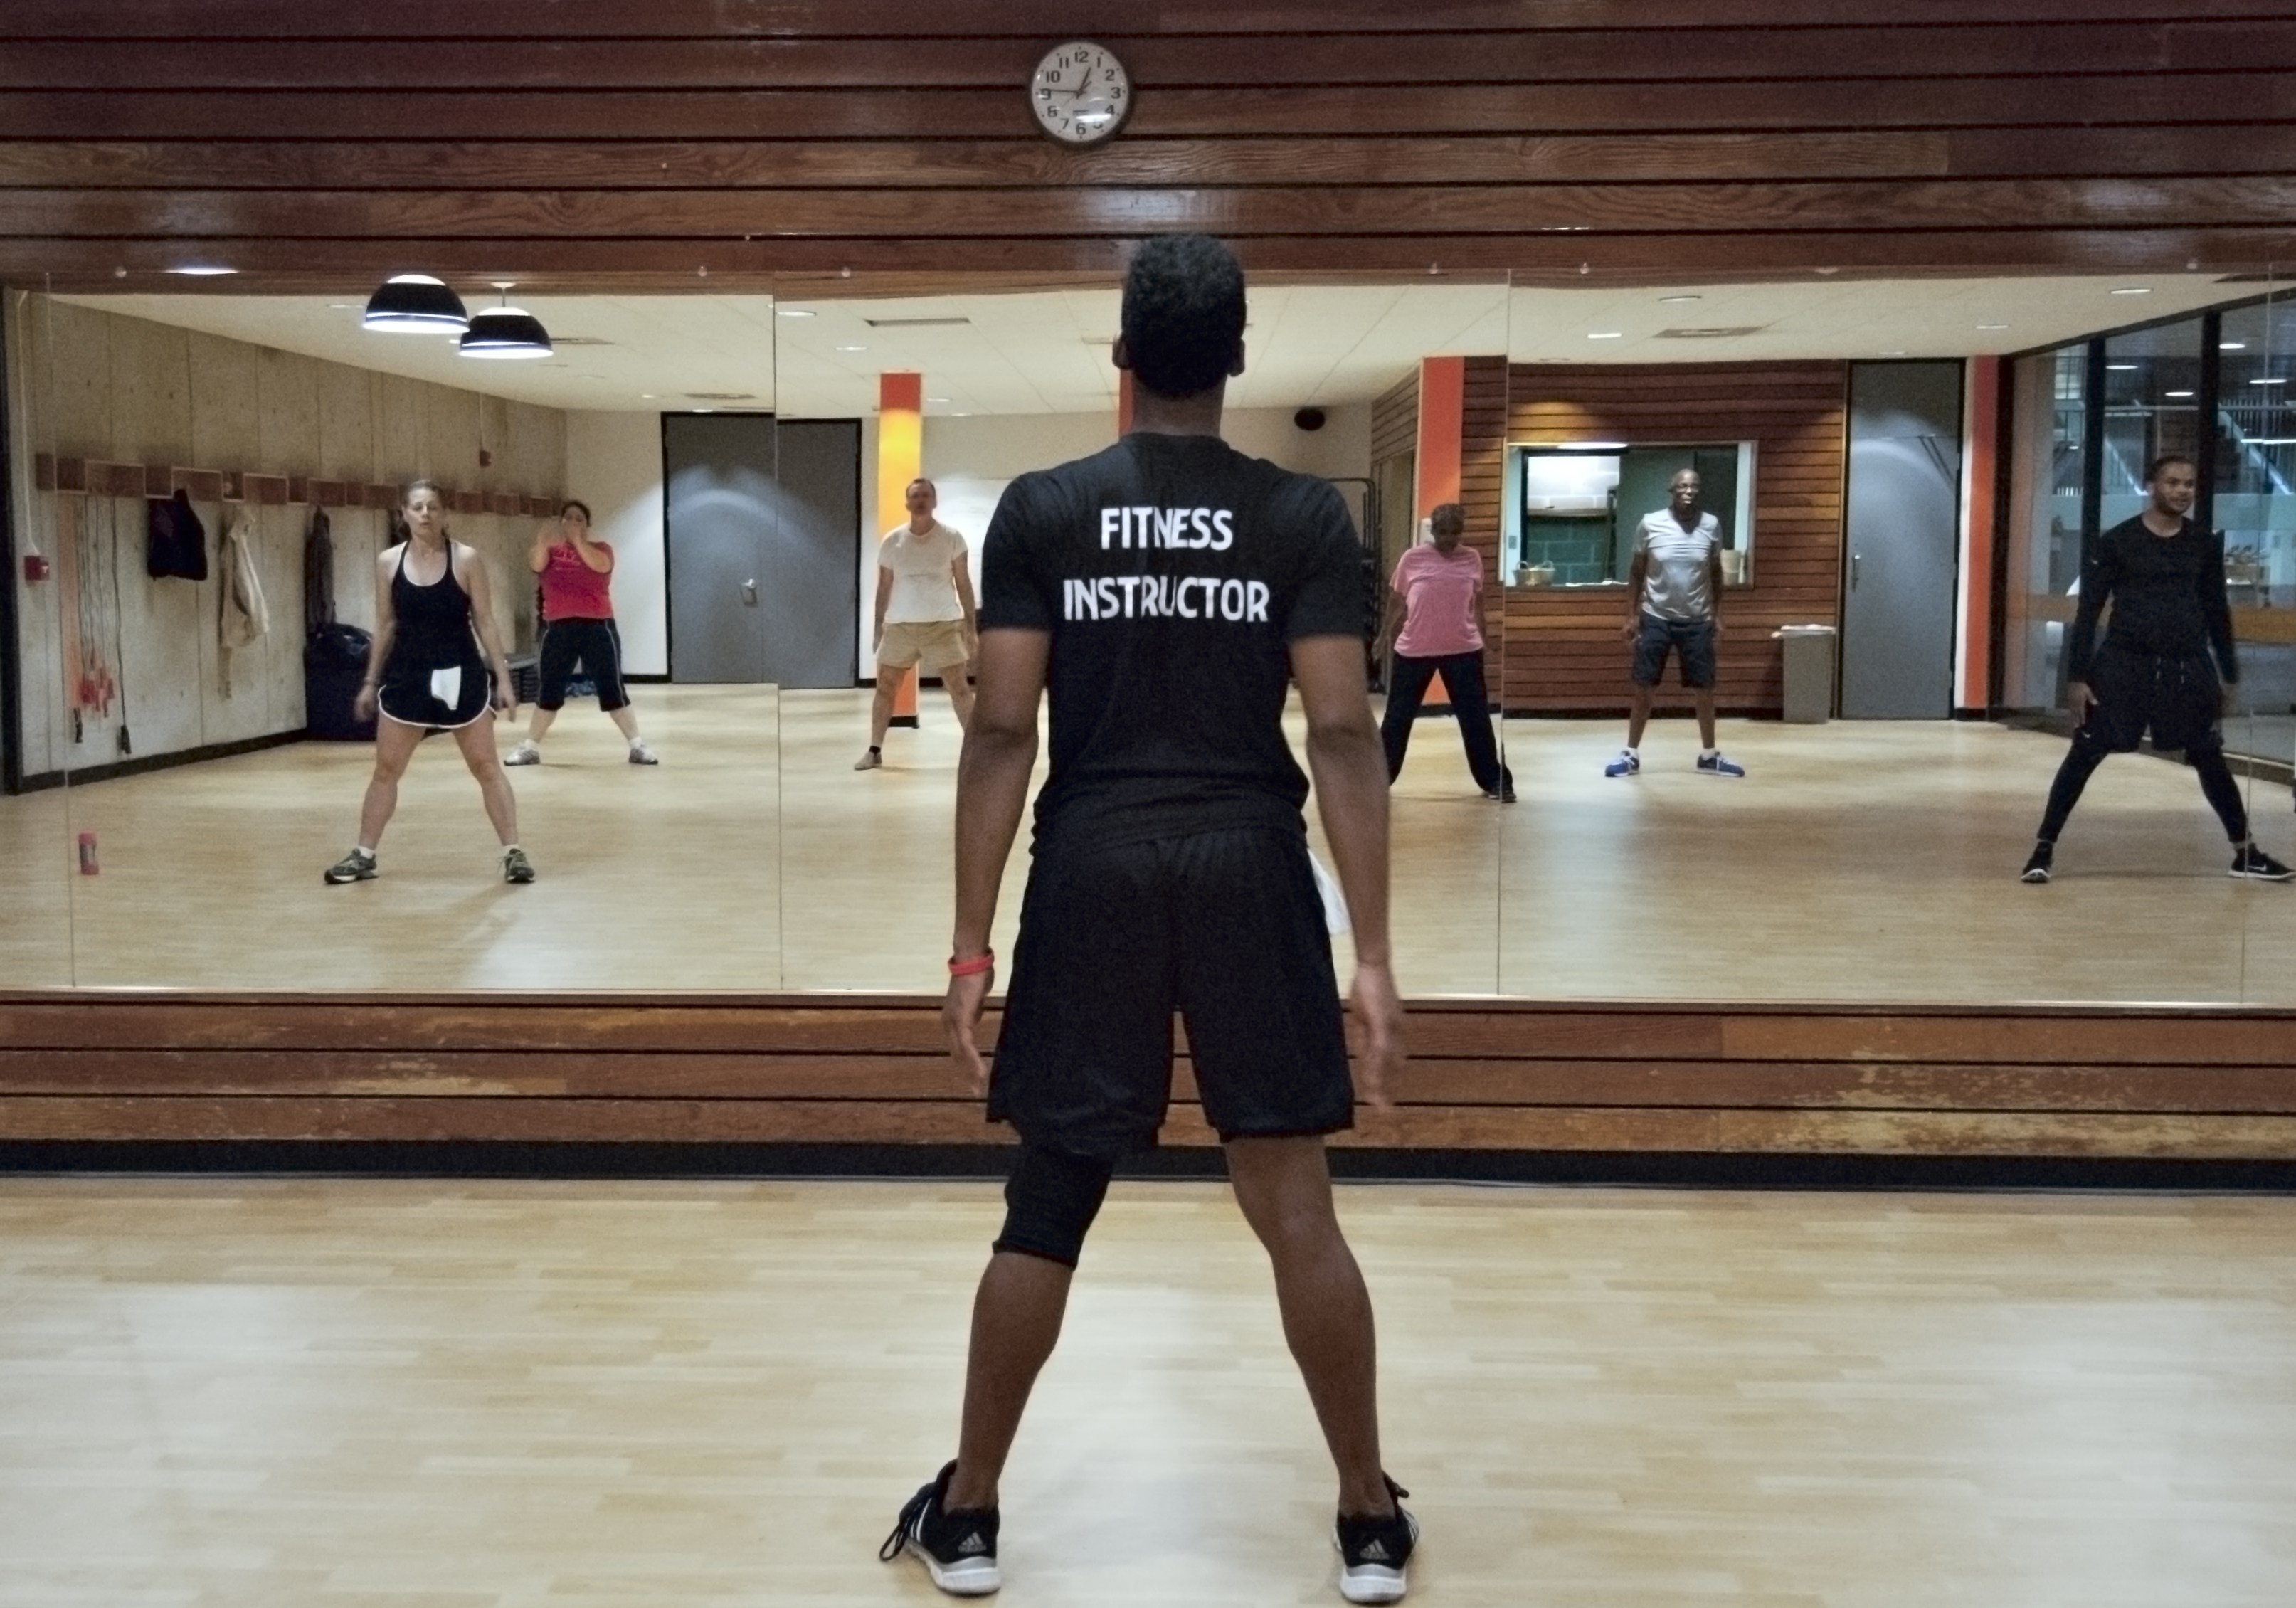 fitness instructor leading fitness class